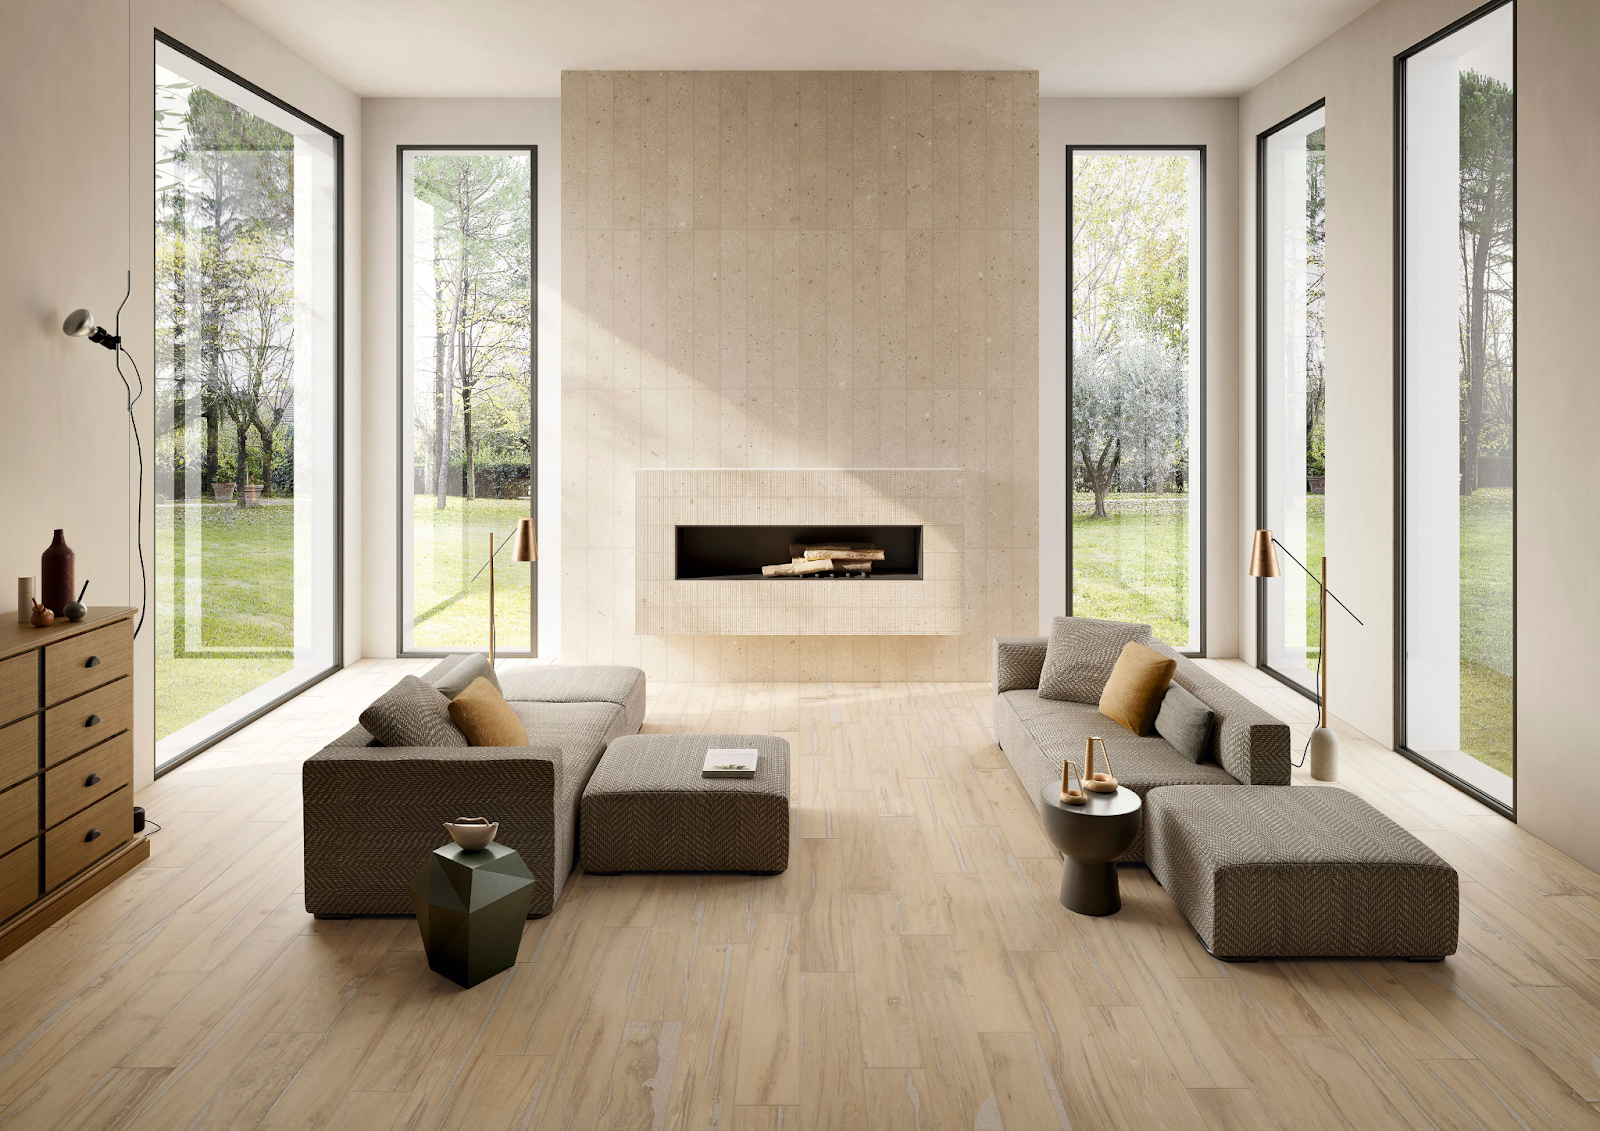 Living room with wood-look tile flooring and stone-look fireplace surround